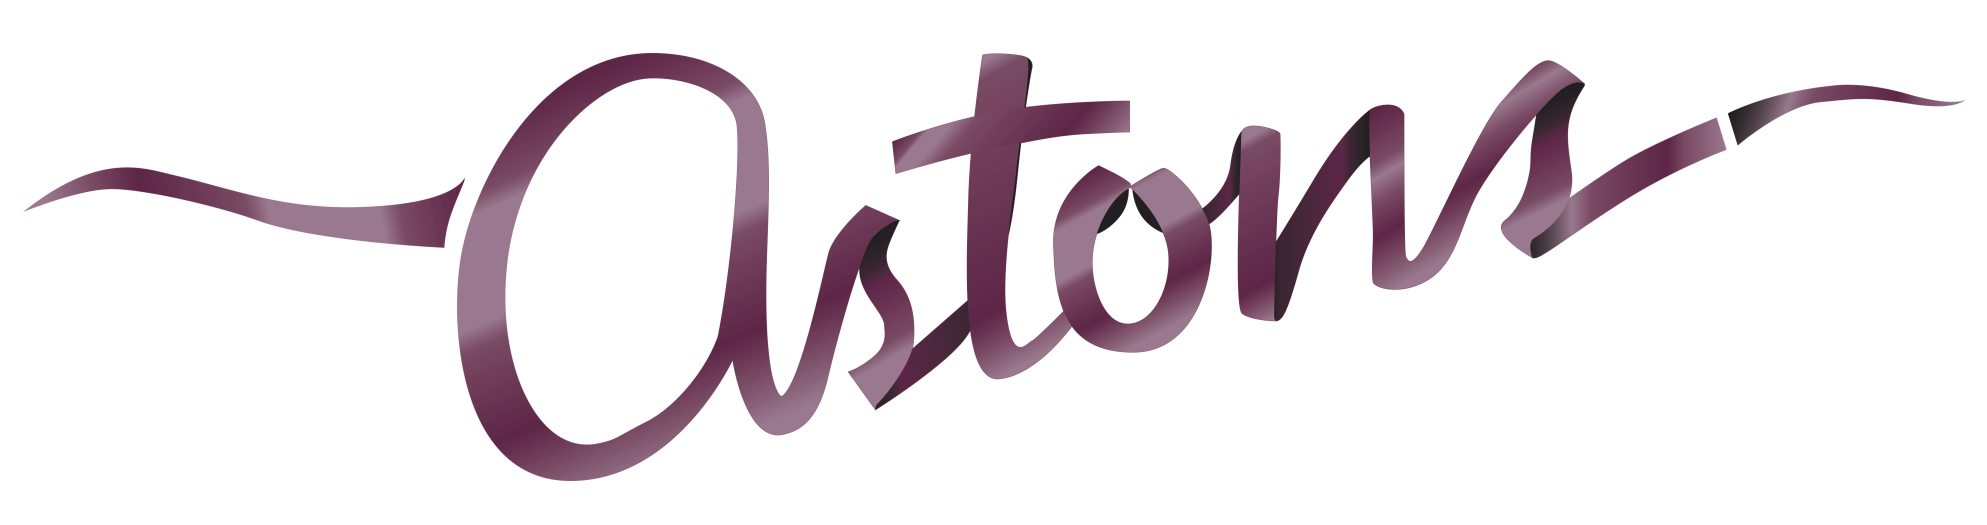 Astons Coaches - Coach Hire Services